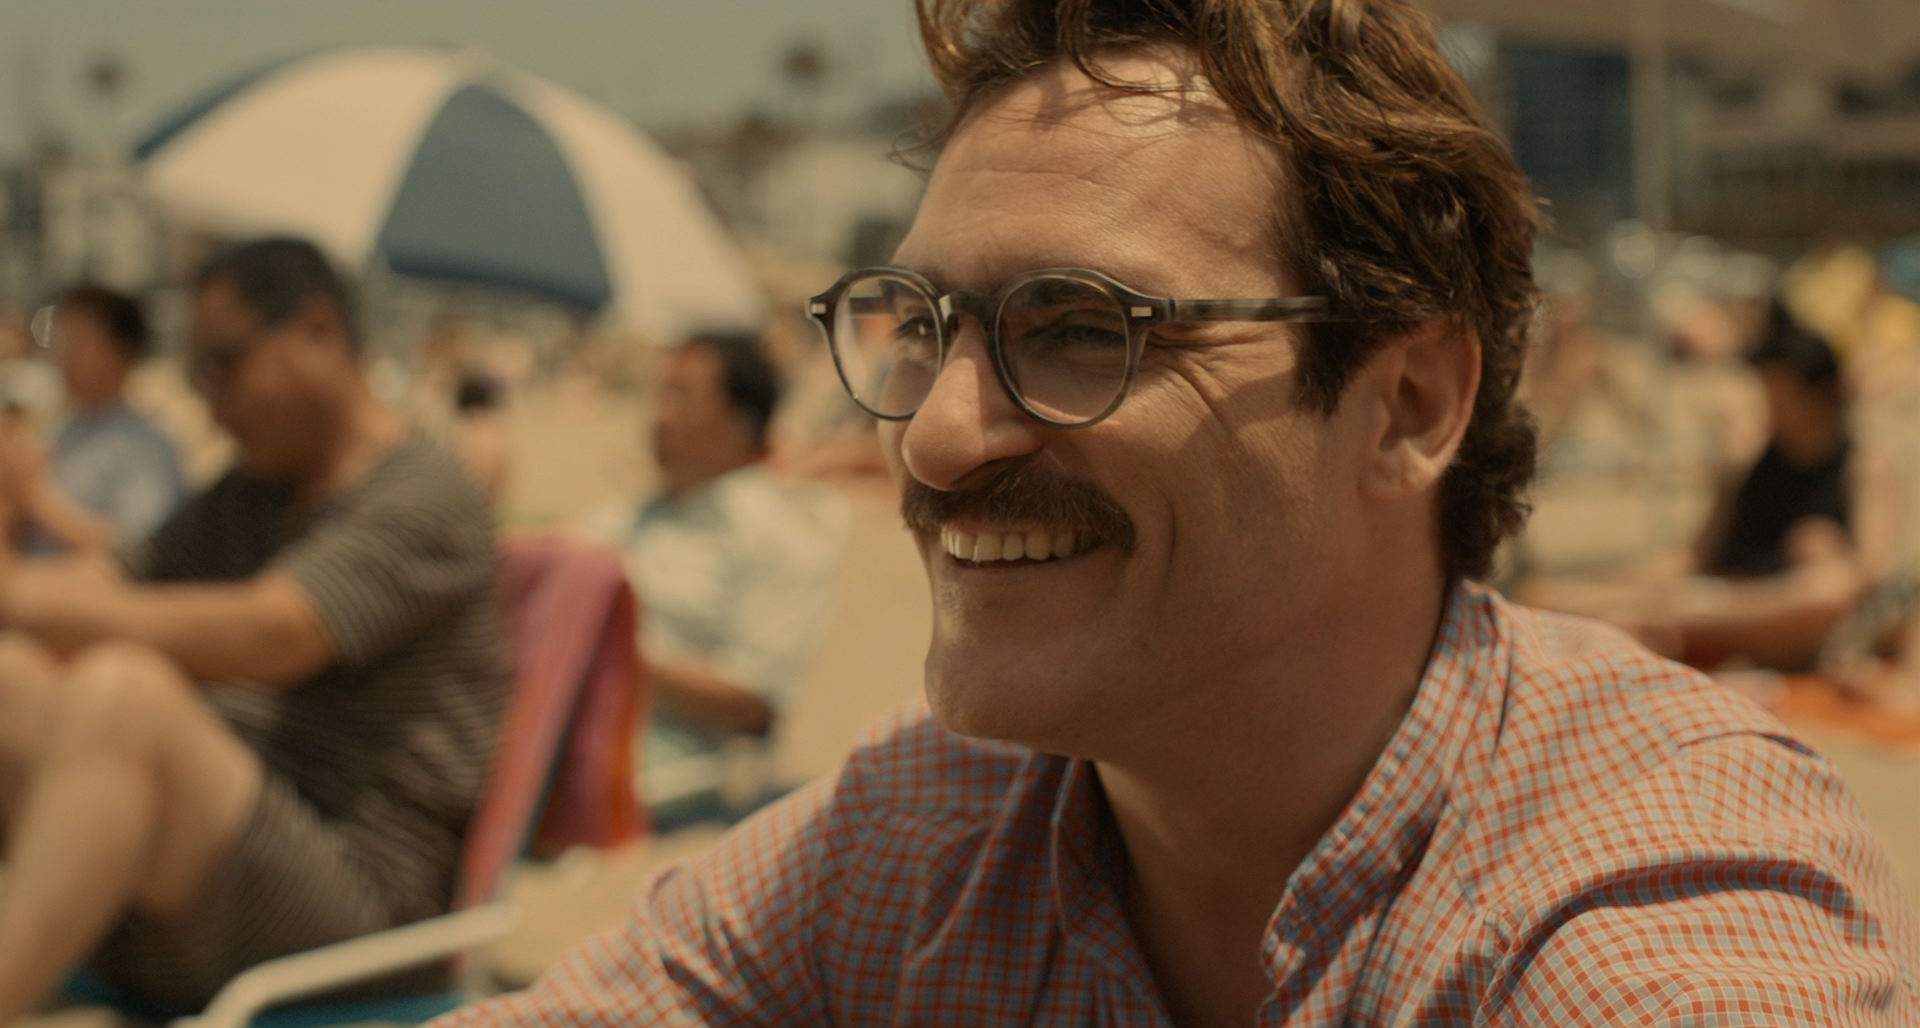 film review of her In spike jonze's postmodern tale of a man who dates his operating system, digital affairs are as sensual – and heartbreaking, as the real thing, writes peter bradshaw.